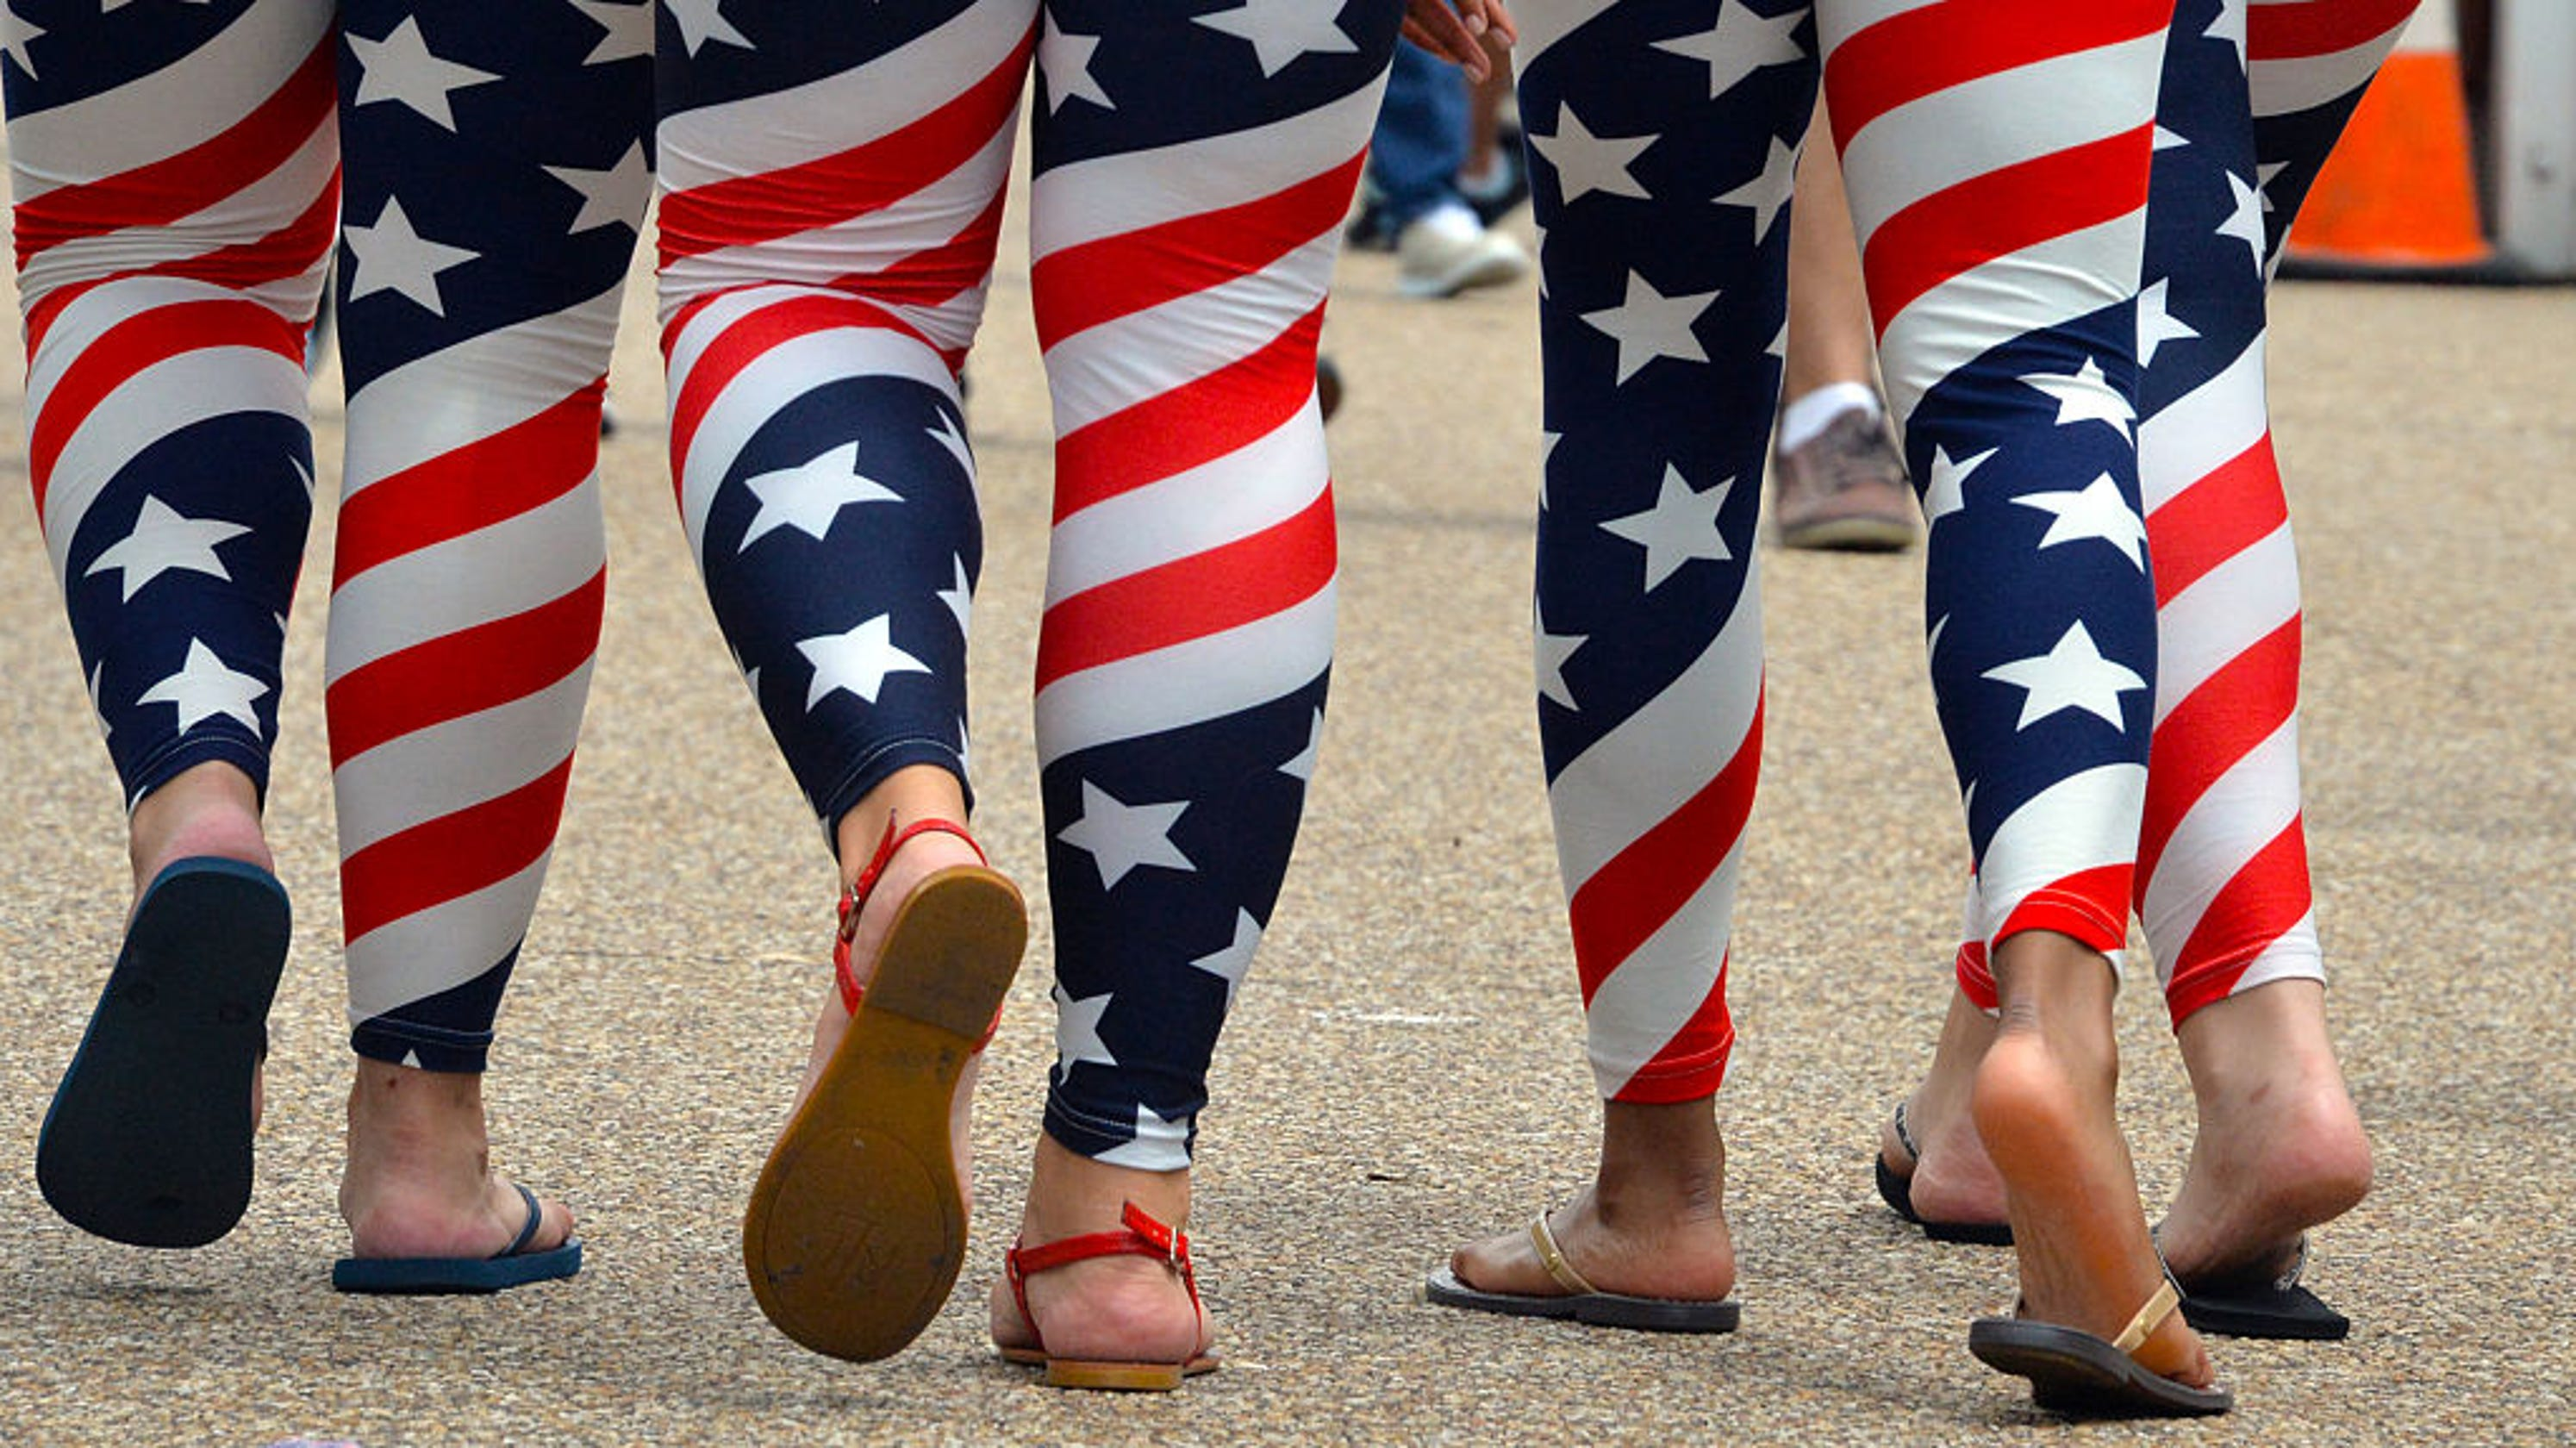 The American flag clothes you're wearing for the Fourth of July are technically illegal thumbnail